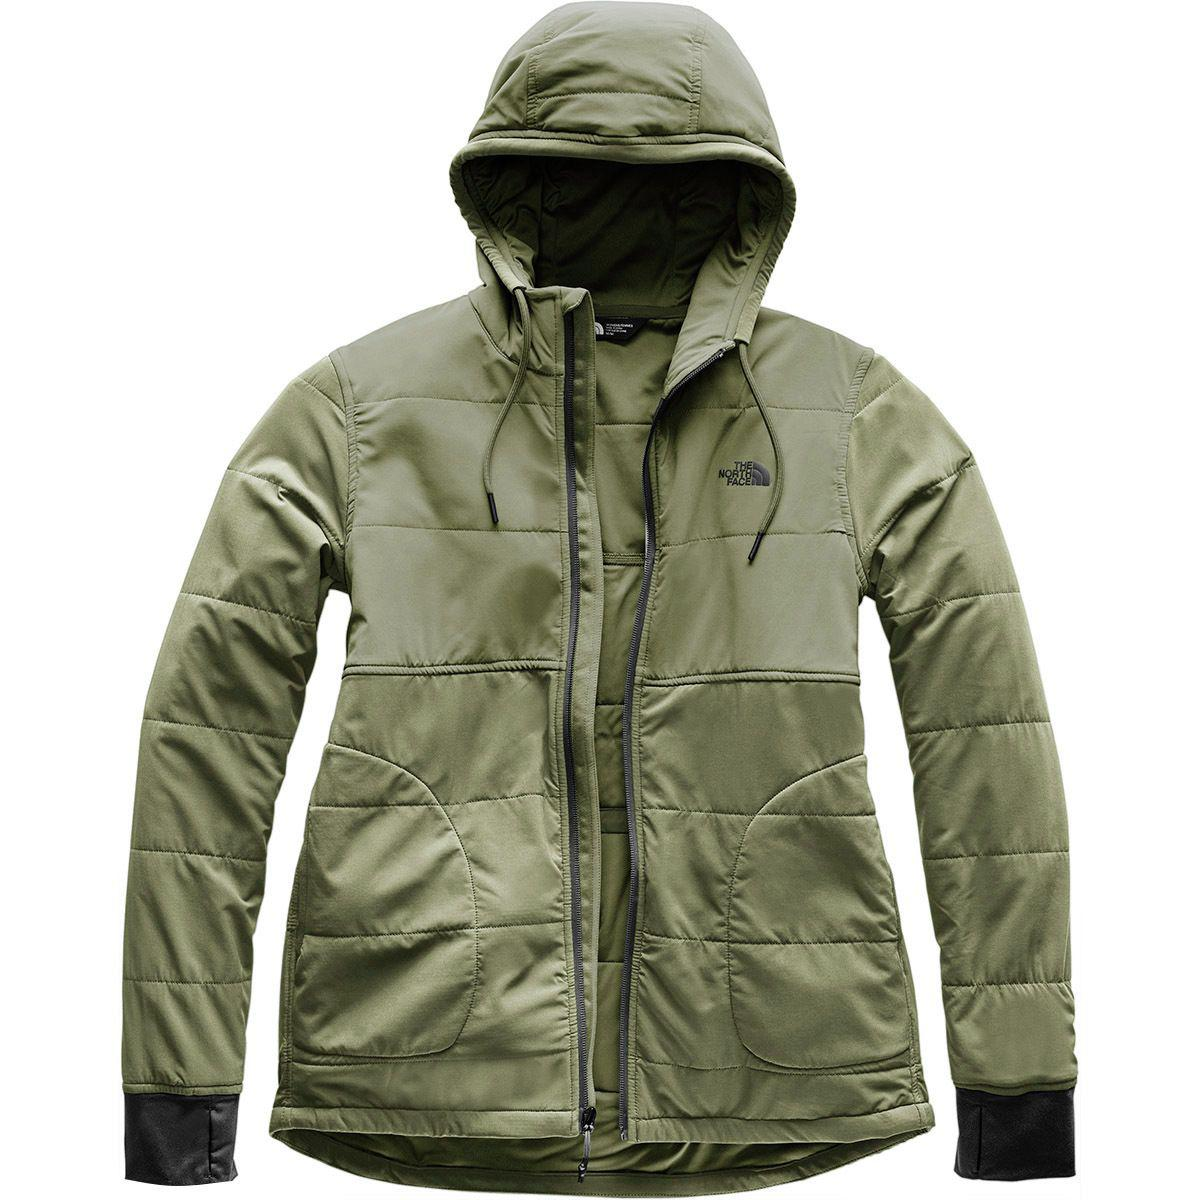 302191ff3a Lyst - The North Face Mountain Full-zip Hooded Sweatshirt in Green